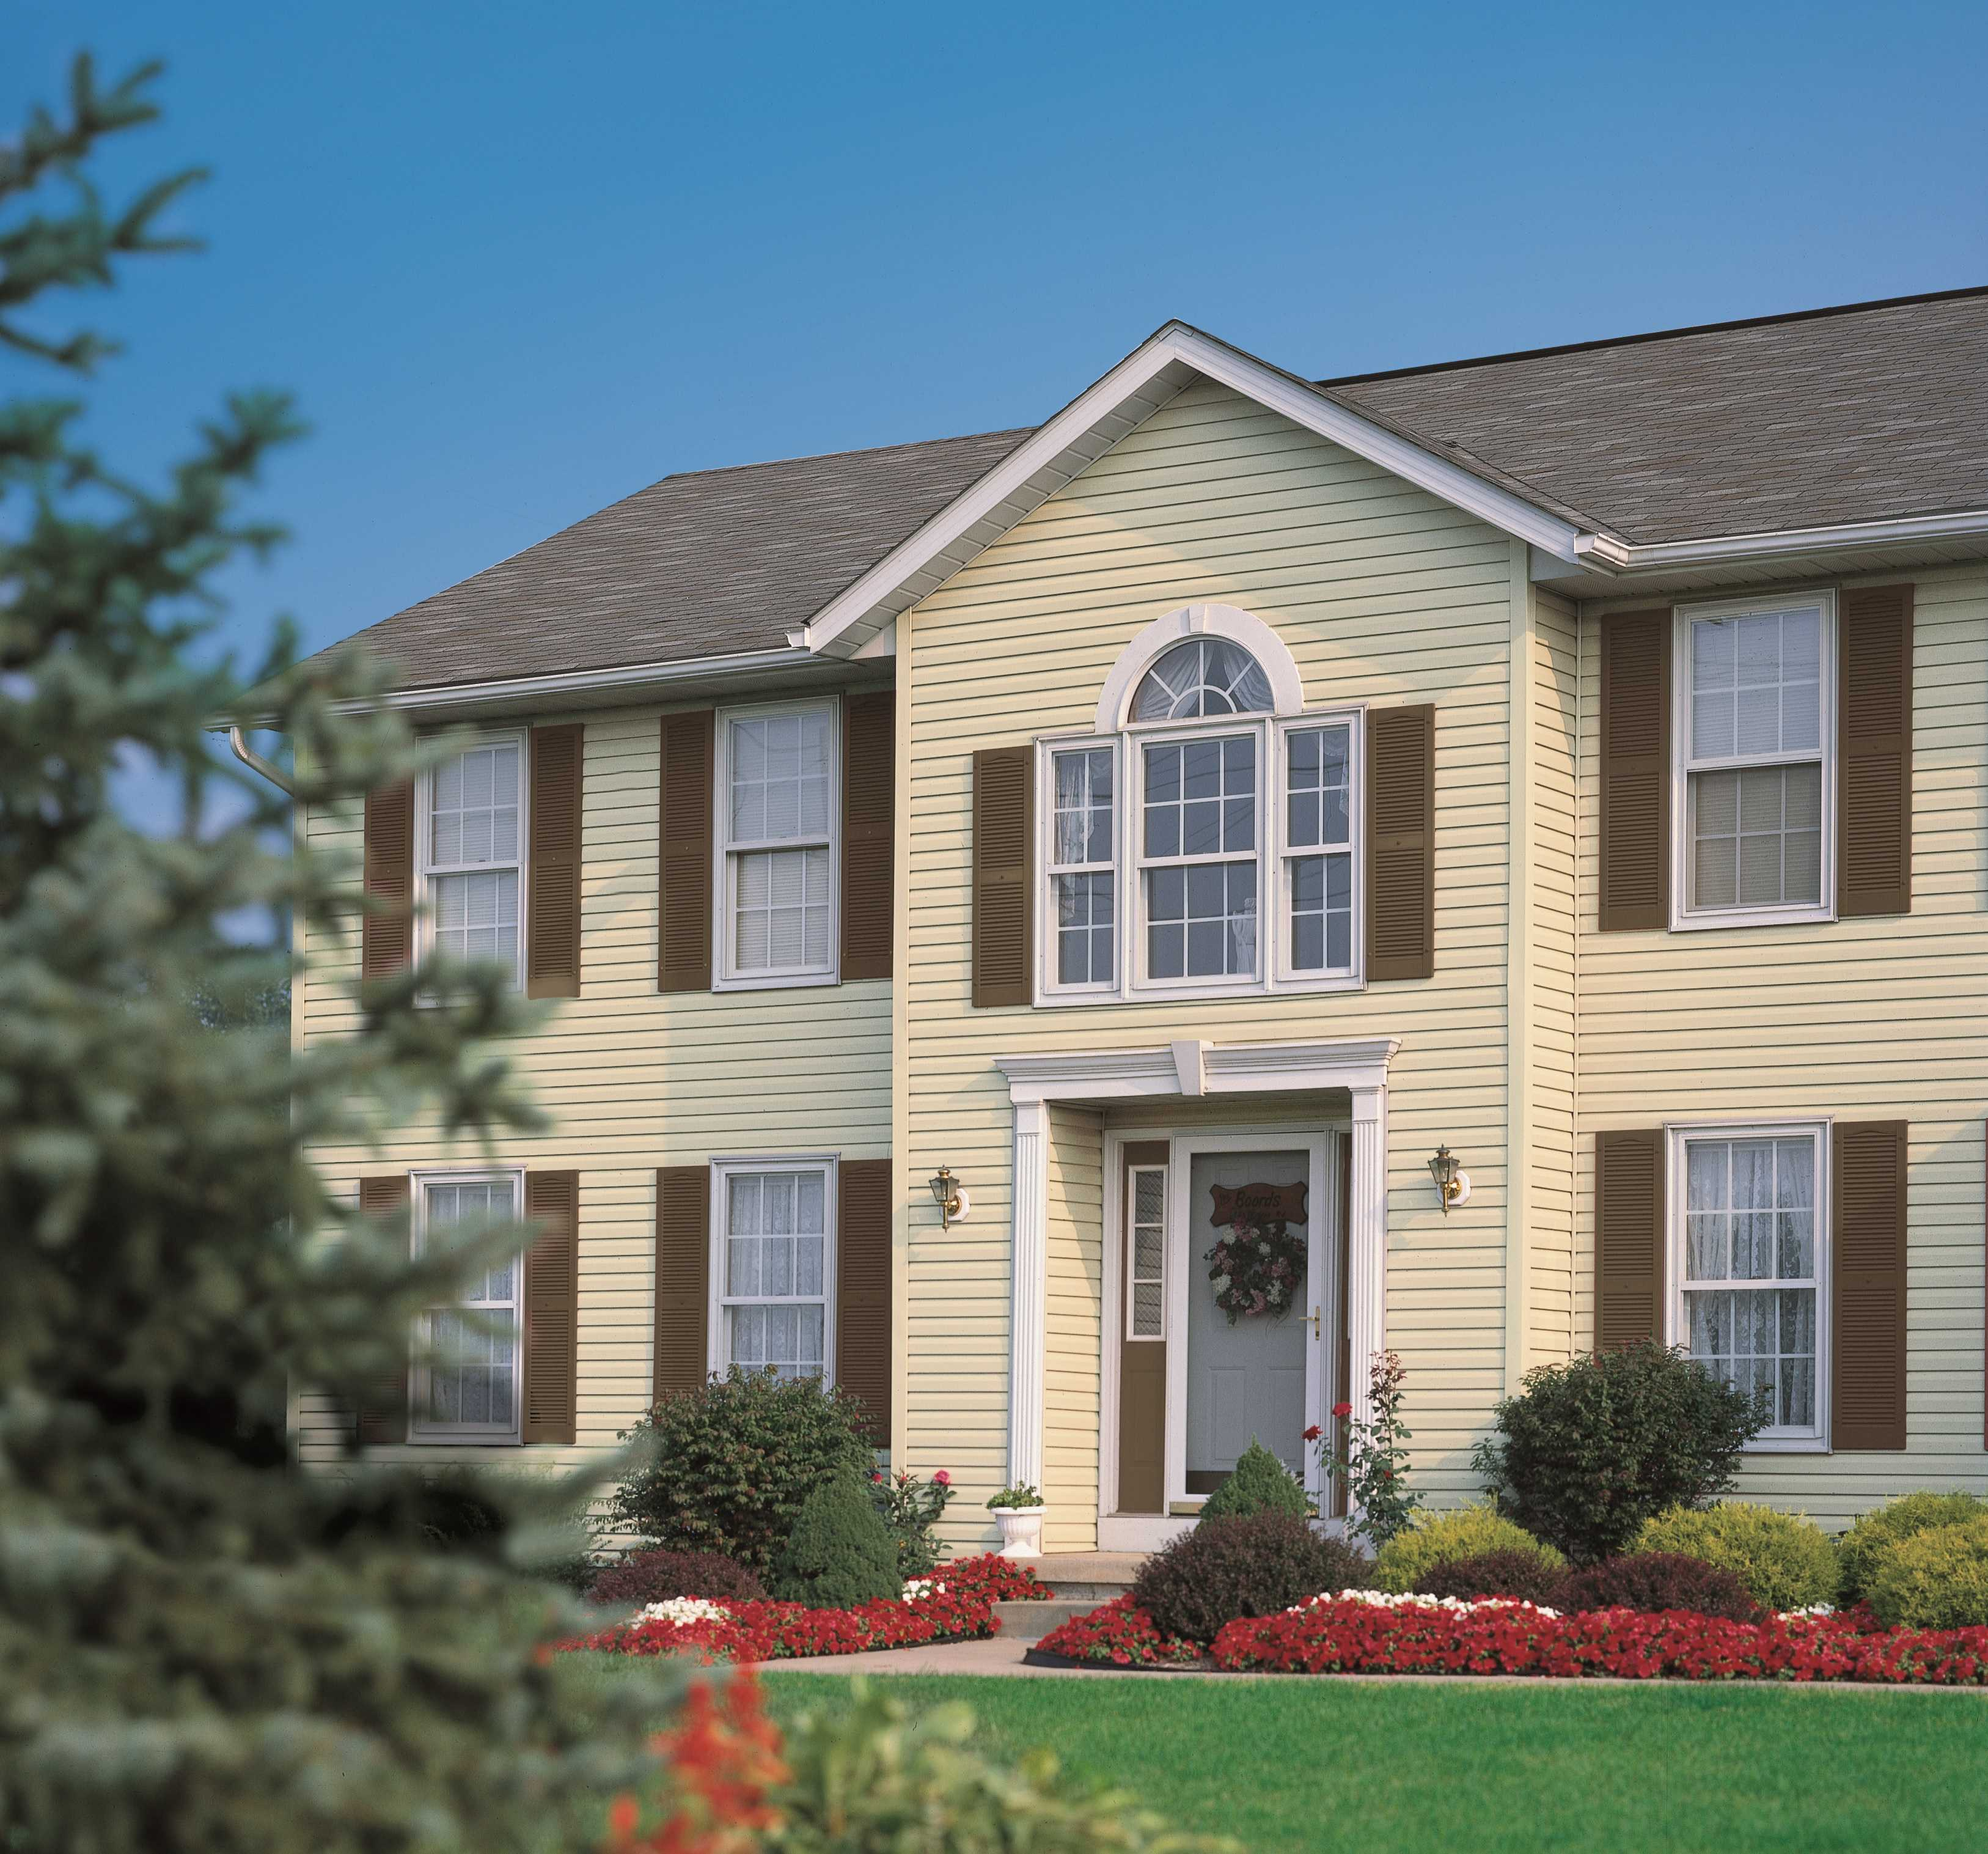 Vinyl Siding Cost Vs Value Assessment Kaycan